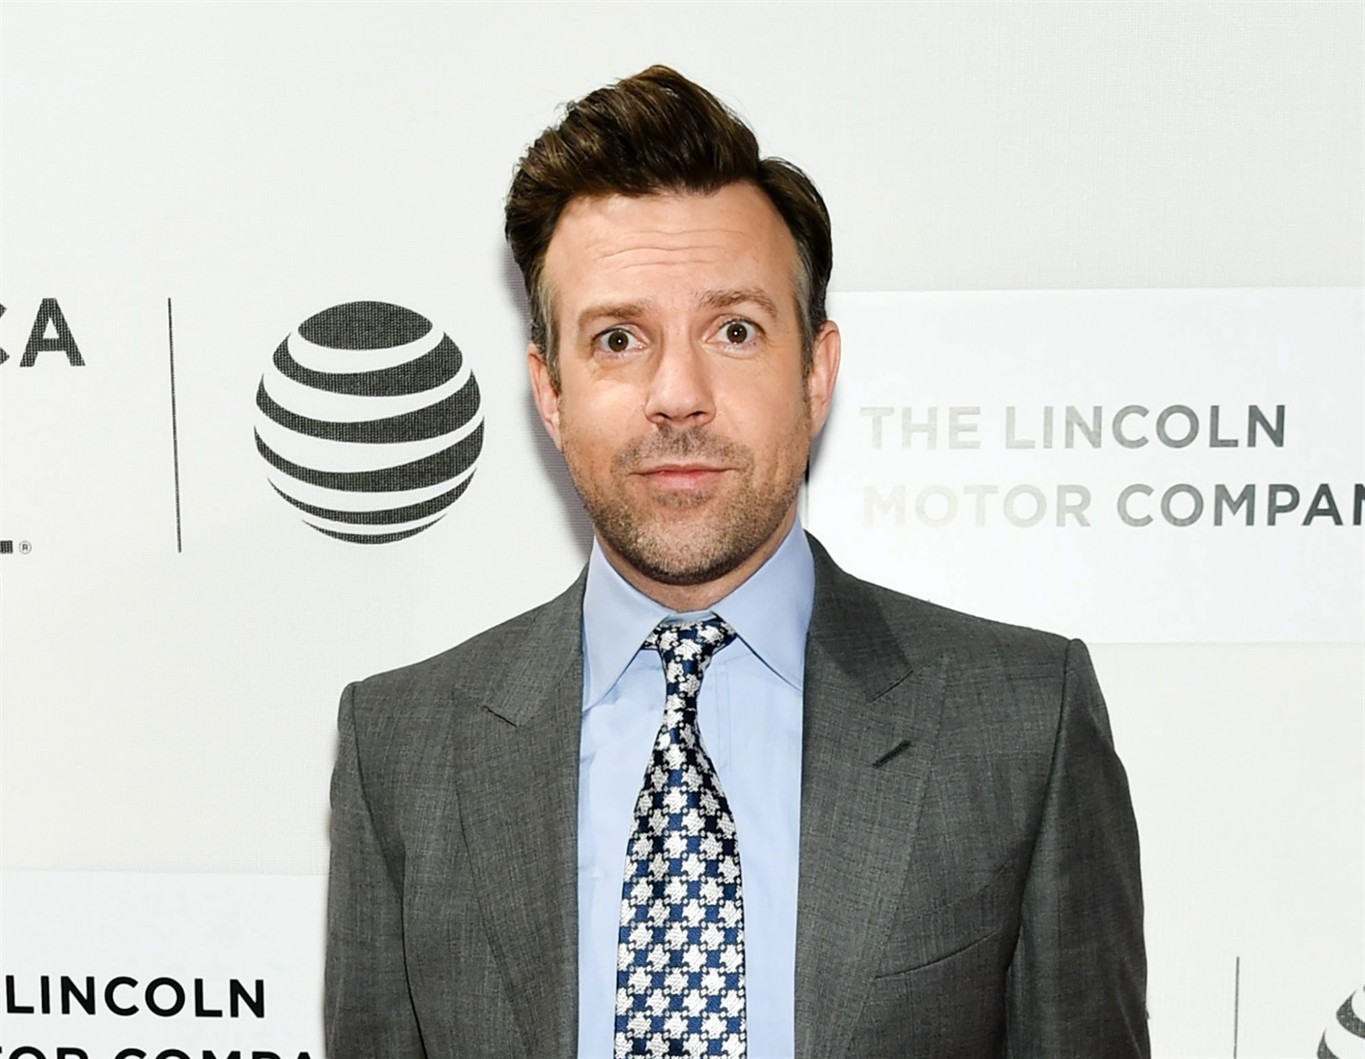 Jason Sudeikis will lead stage play of 'Dead Poets Society'